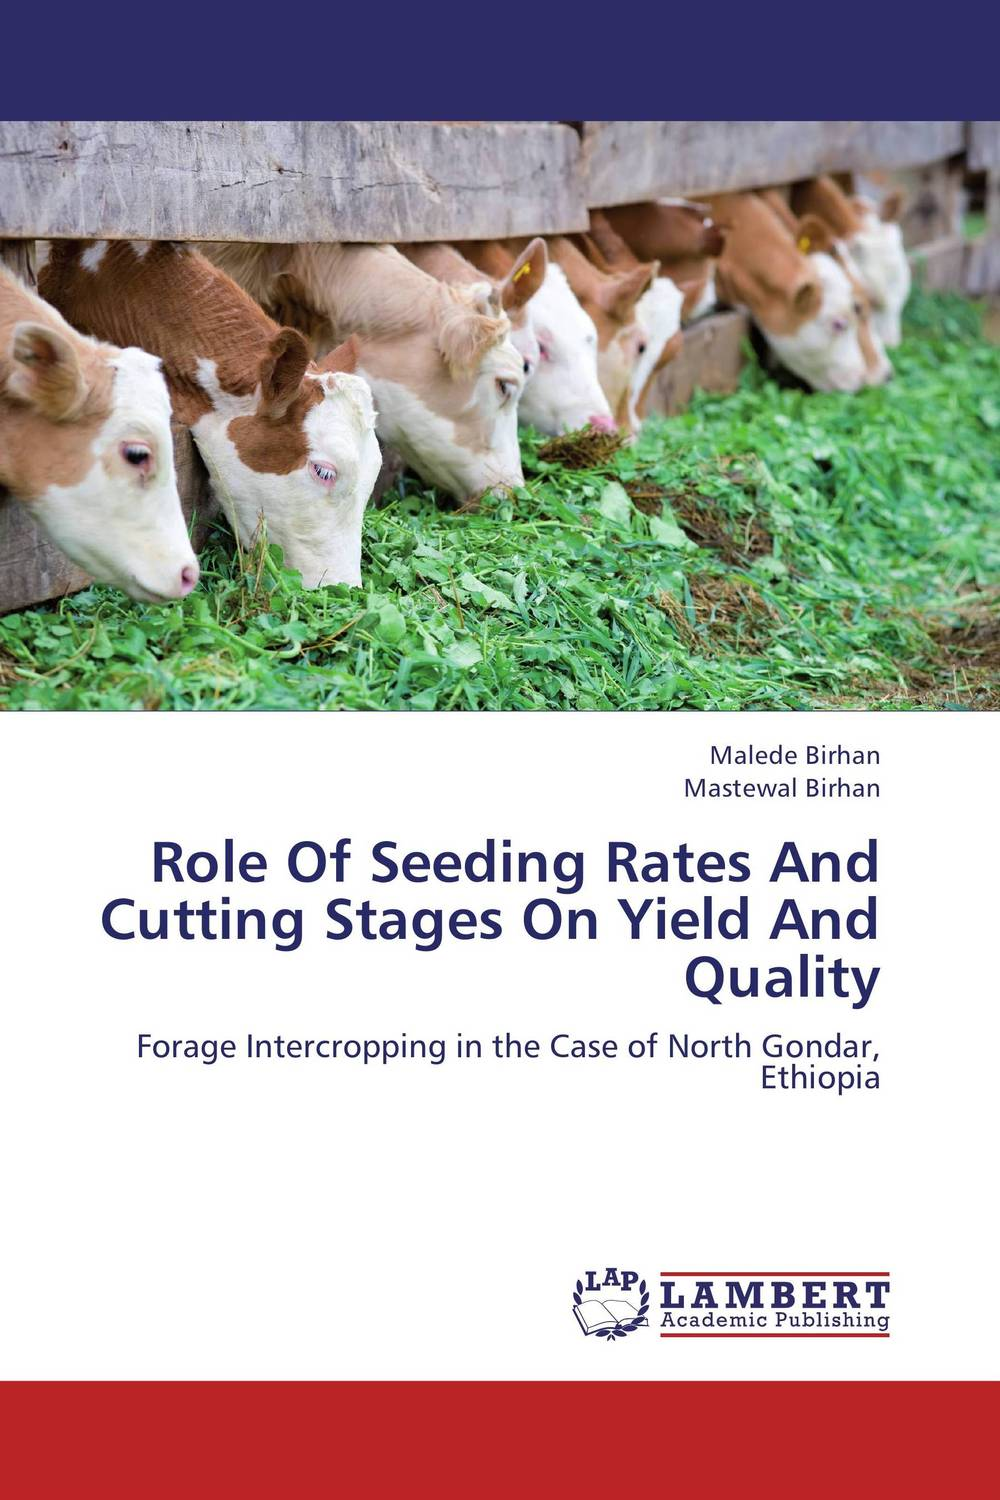 Фото Role Of Seeding Rates And Cutting Stages On Yield And Quality cervical cancer in amhara region in ethiopia